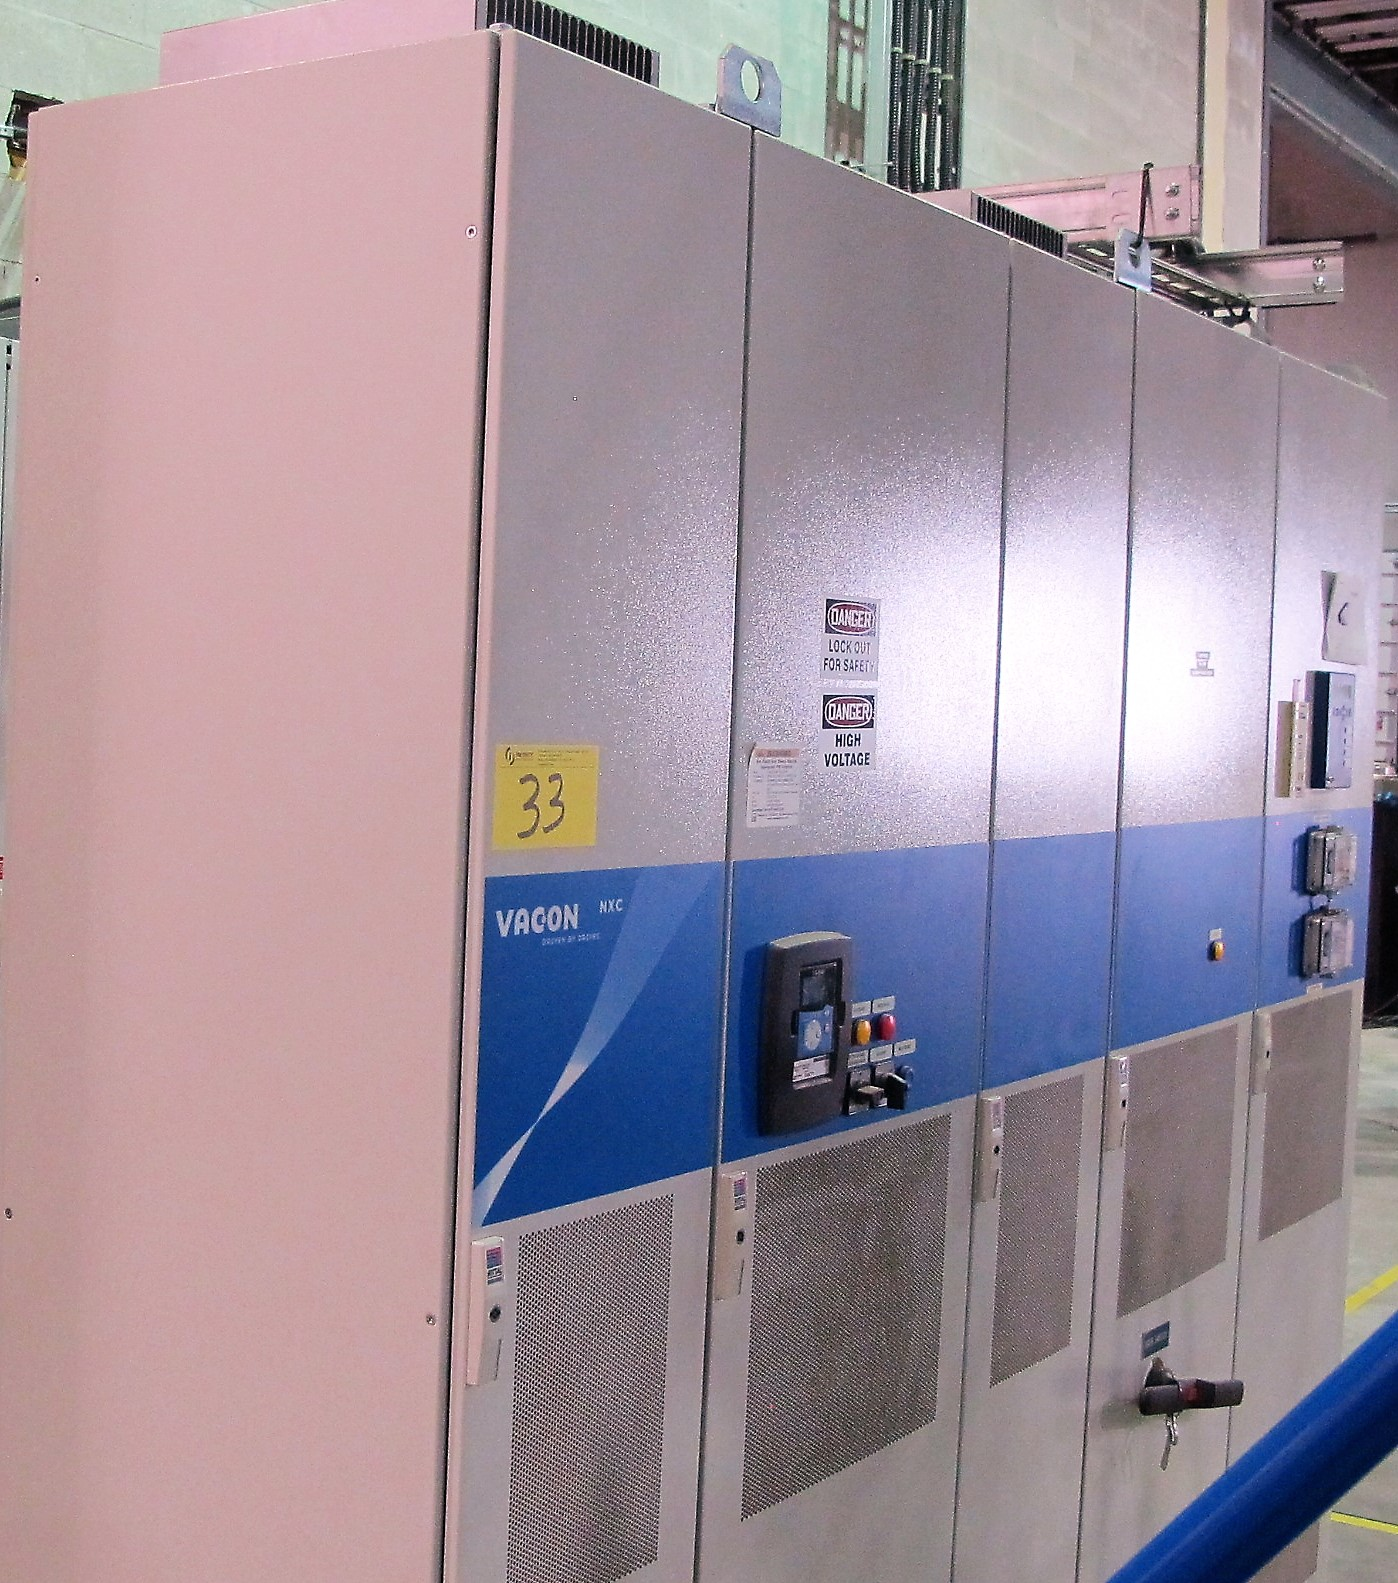 Lot 33 - (5) PANEL VACON NXC ELECTRICAL TESTING CABINETS AND INFEED CABLES FROM MCC